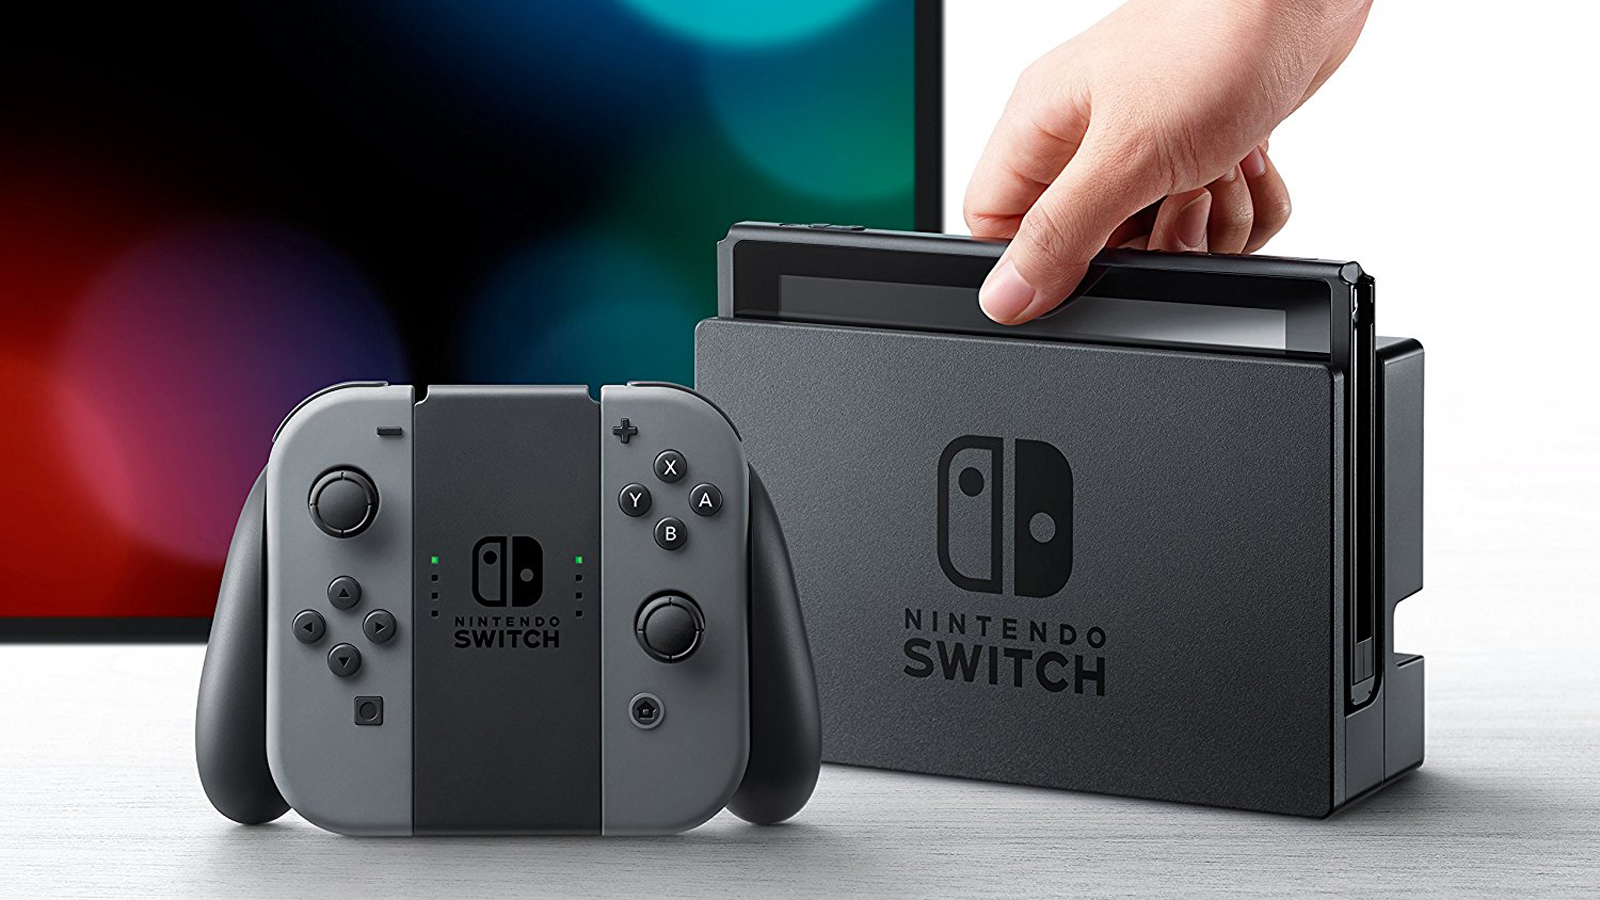 The Nintendo Switch gets a price cut across Europe